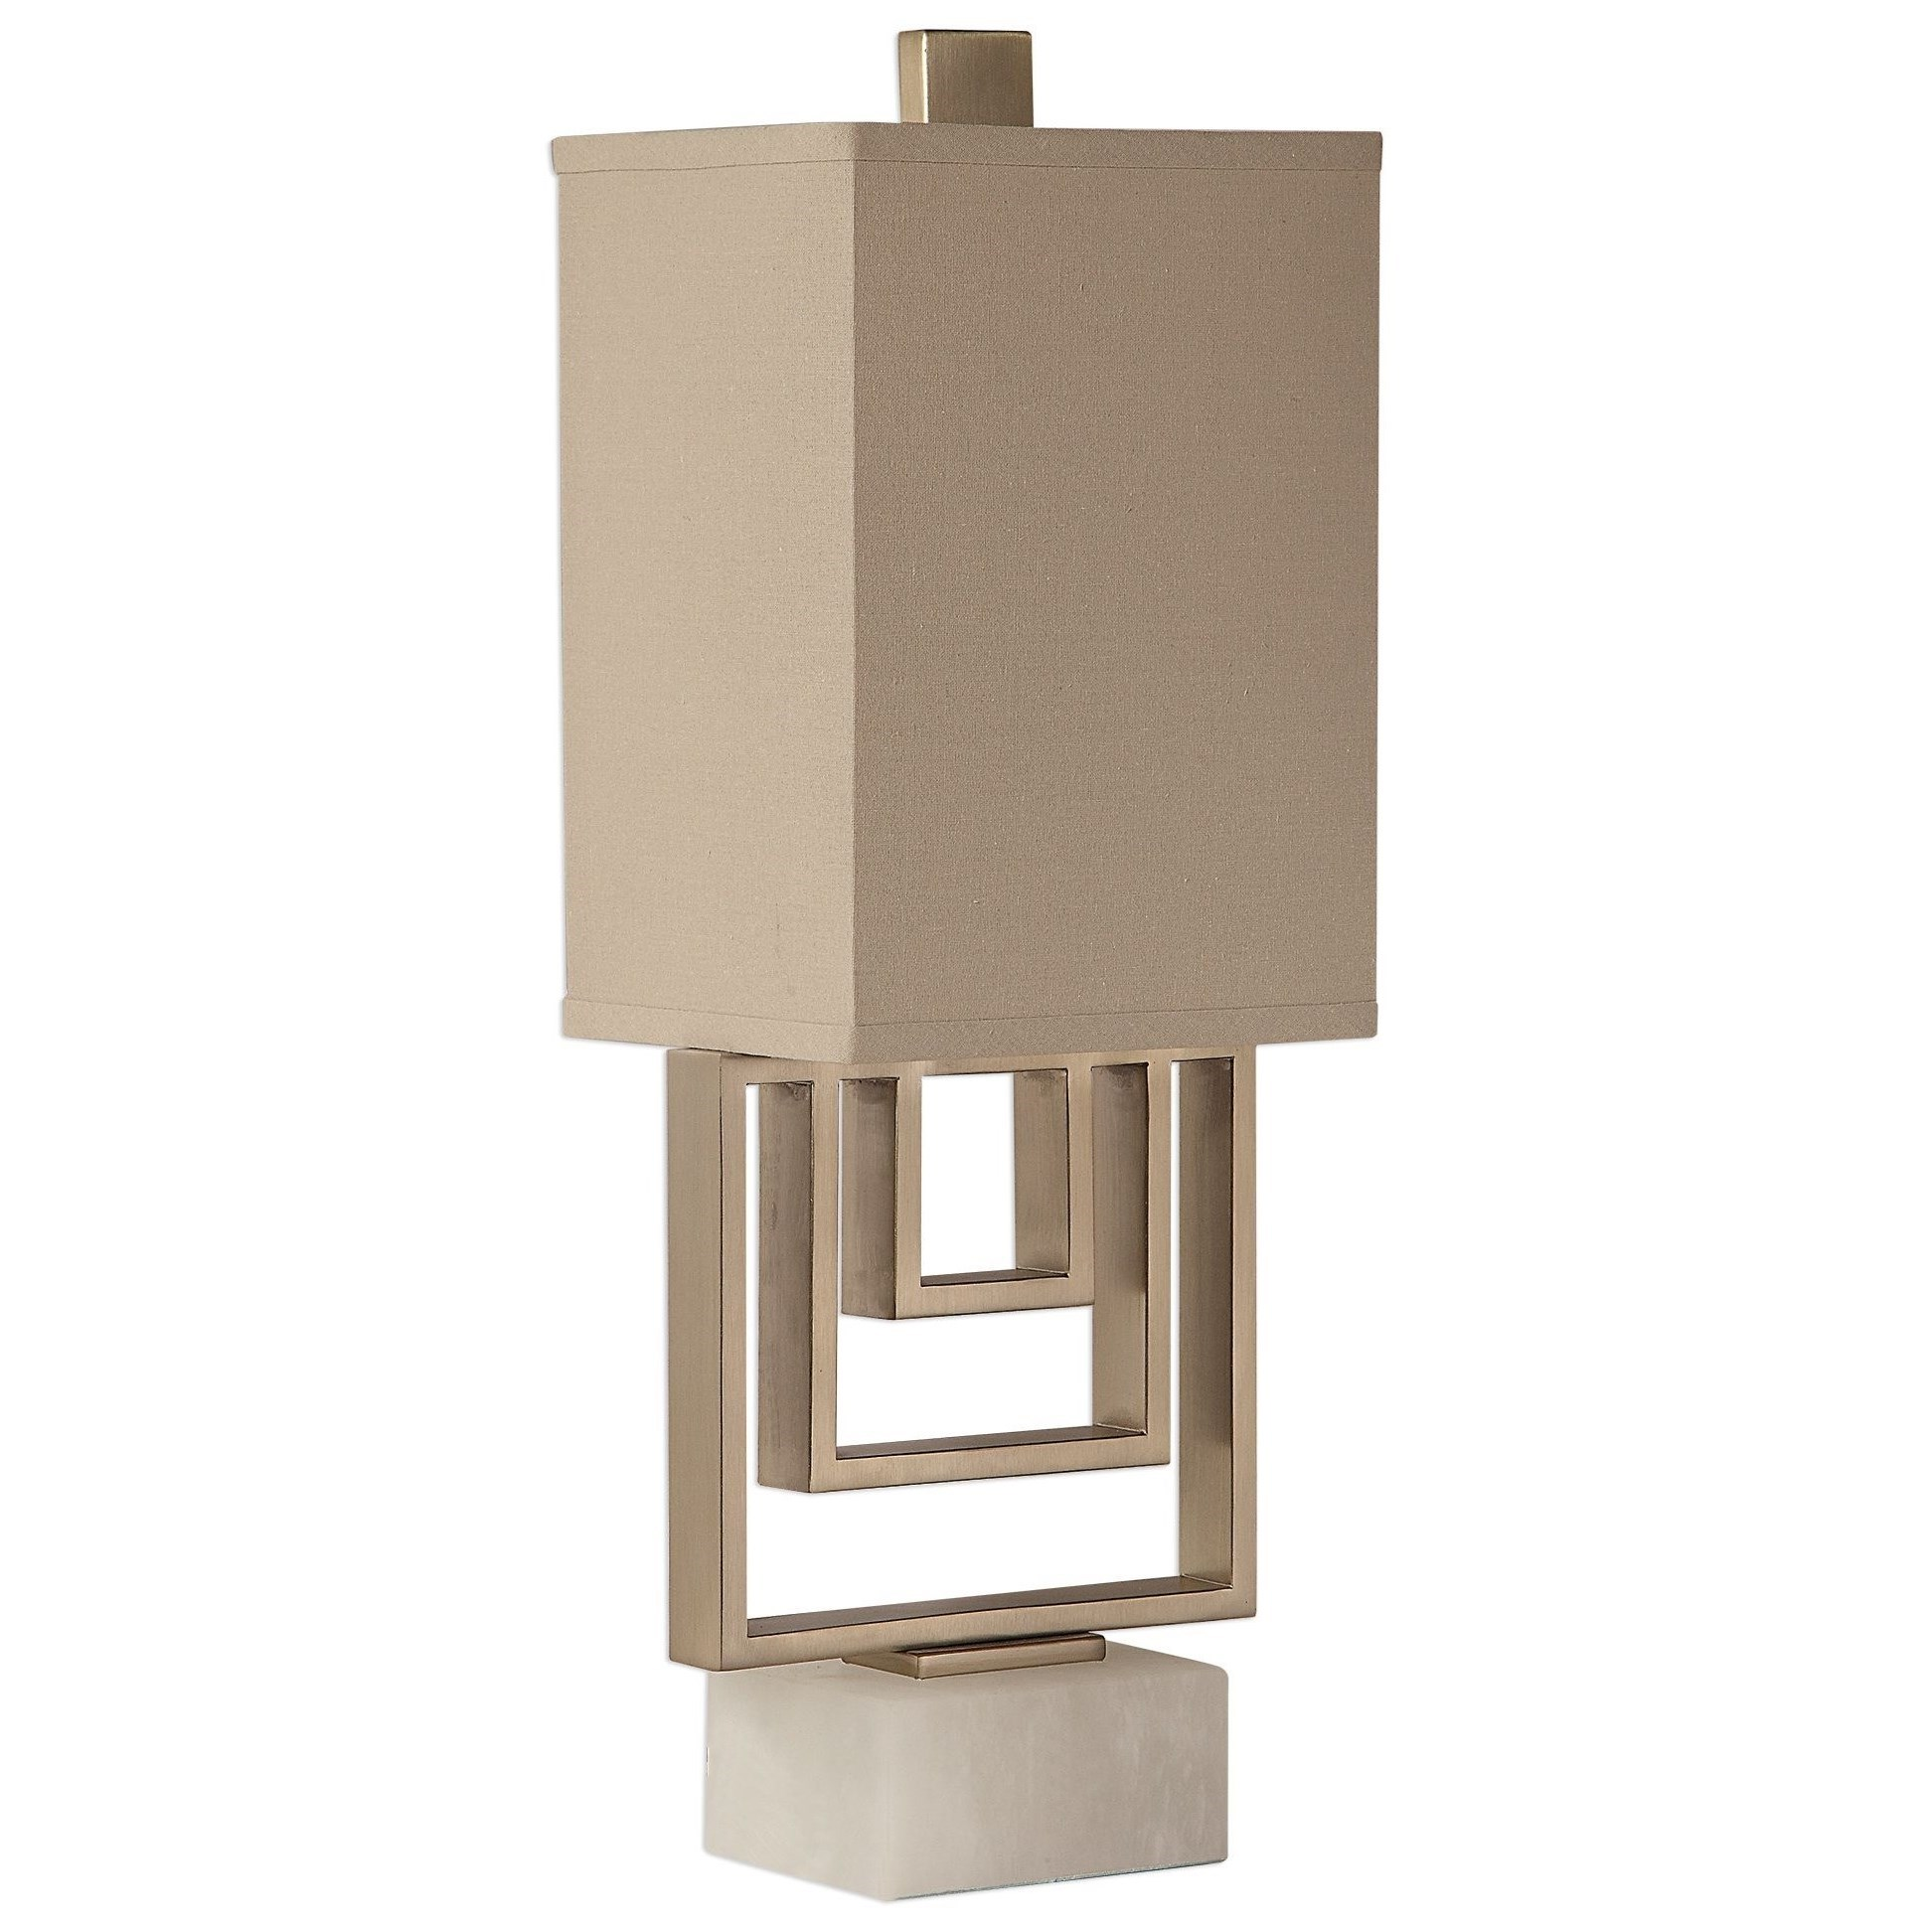 Accent Lamps Medora Brushed Nickel Lamp by Uttermost at Suburban Furniture